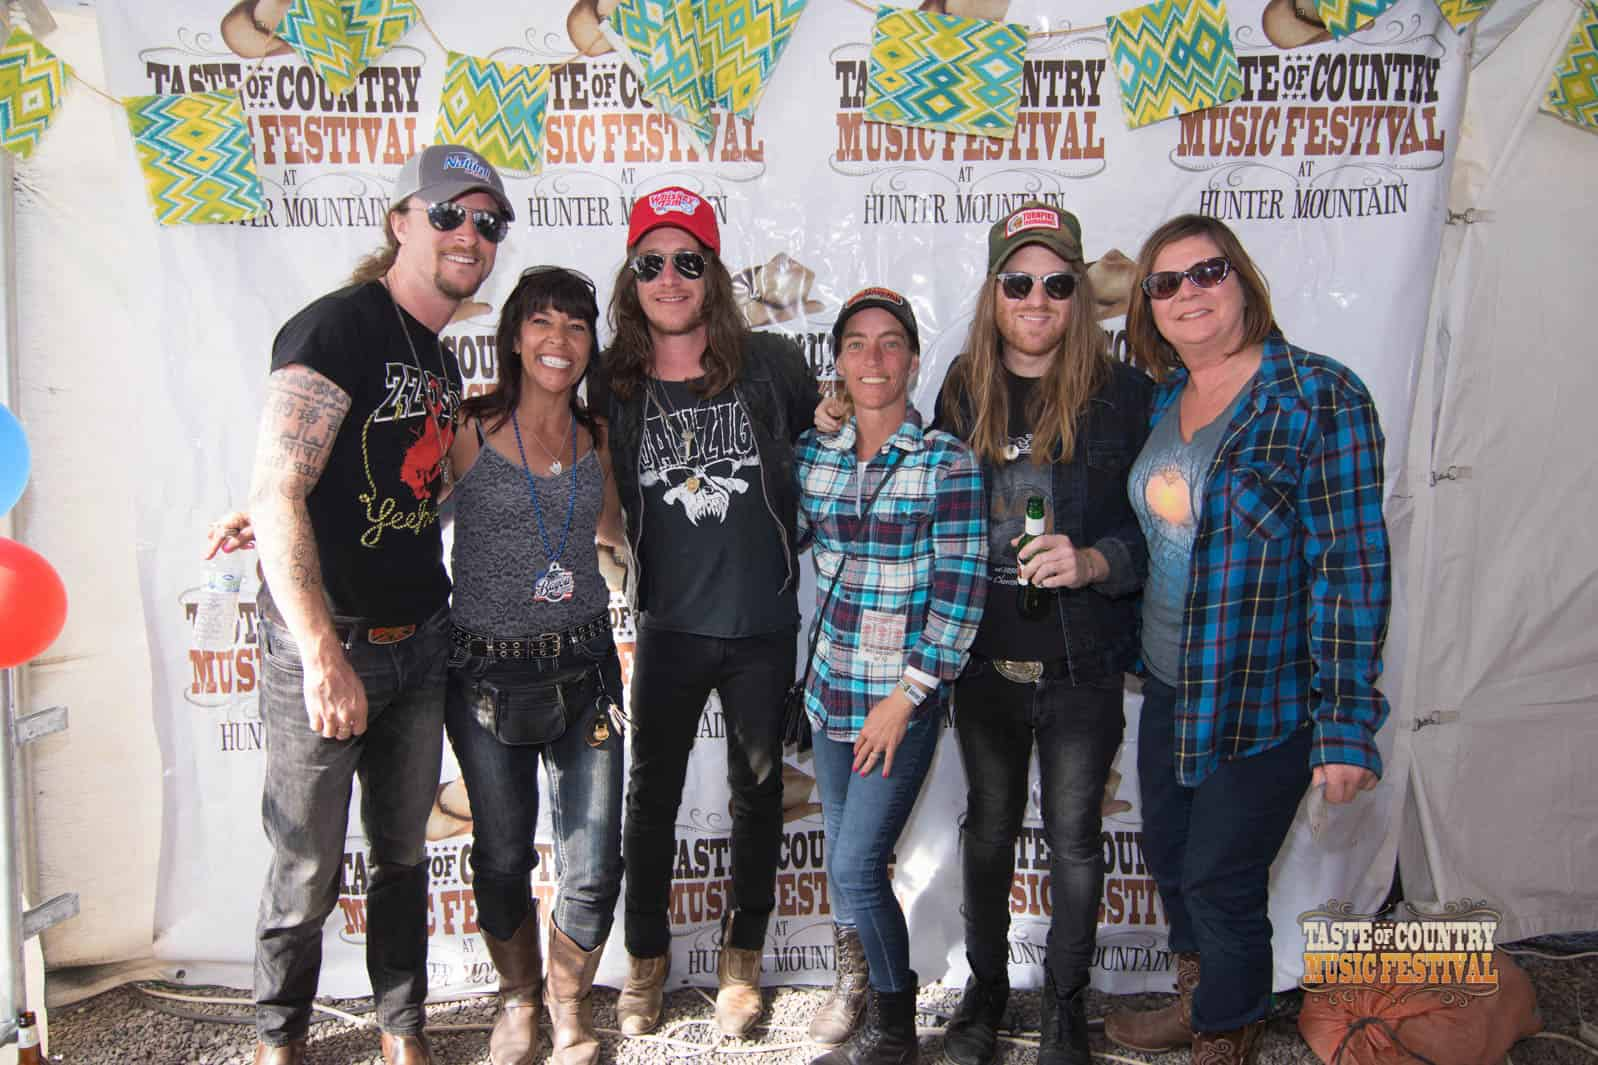 Photos Meet And Greet With The Cadillac Three Taste Of